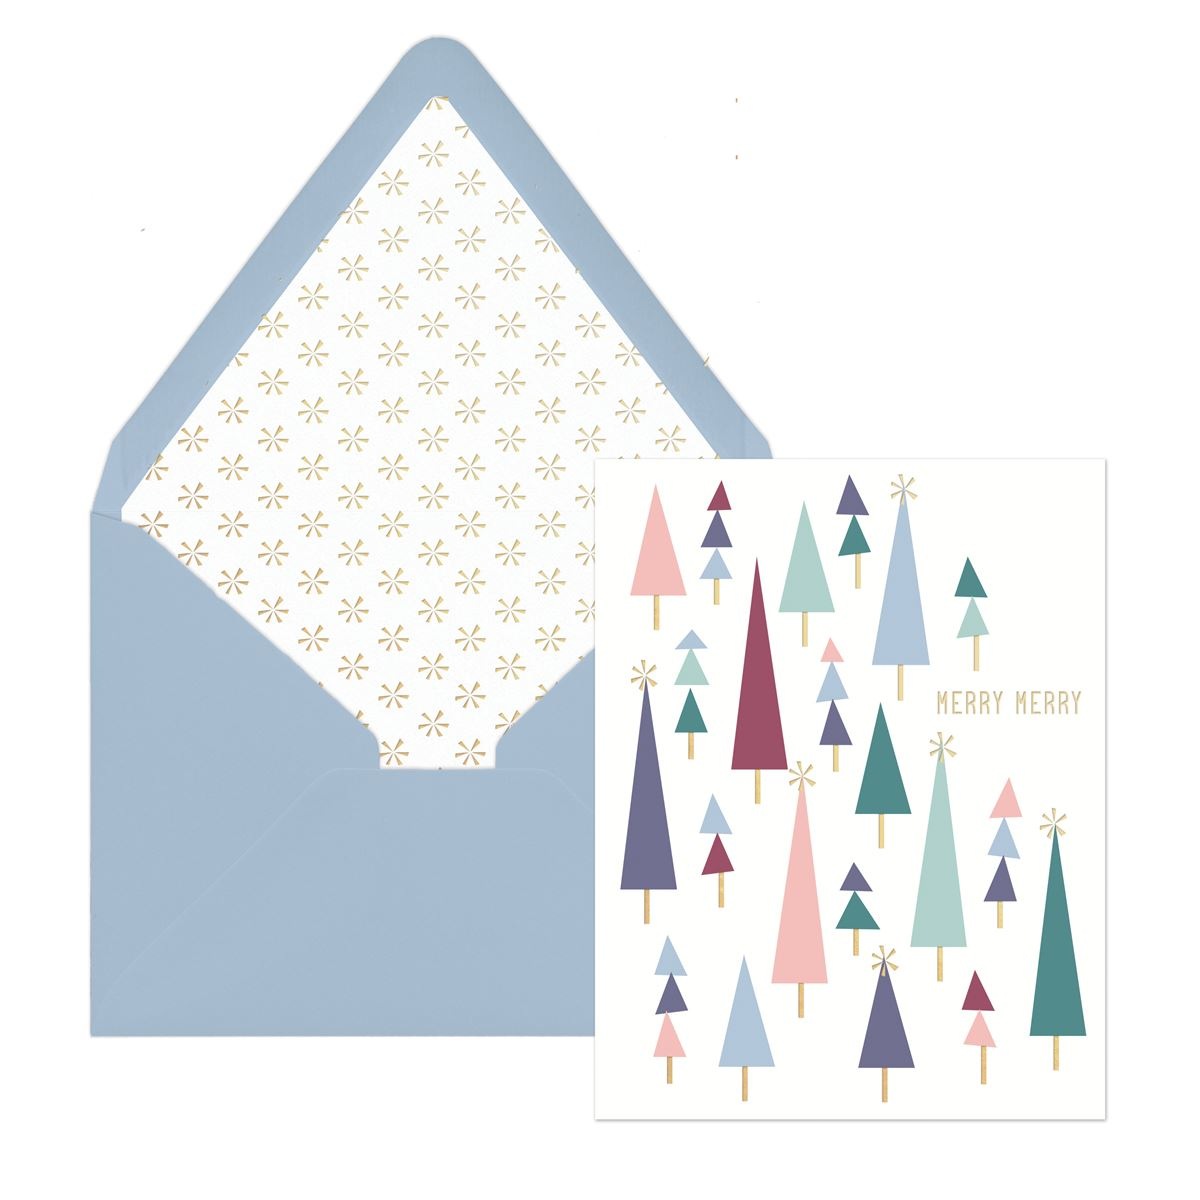 Tiny Trees Merry Merry - Boxed Lined Envelope Holiday Cards 12 Ct